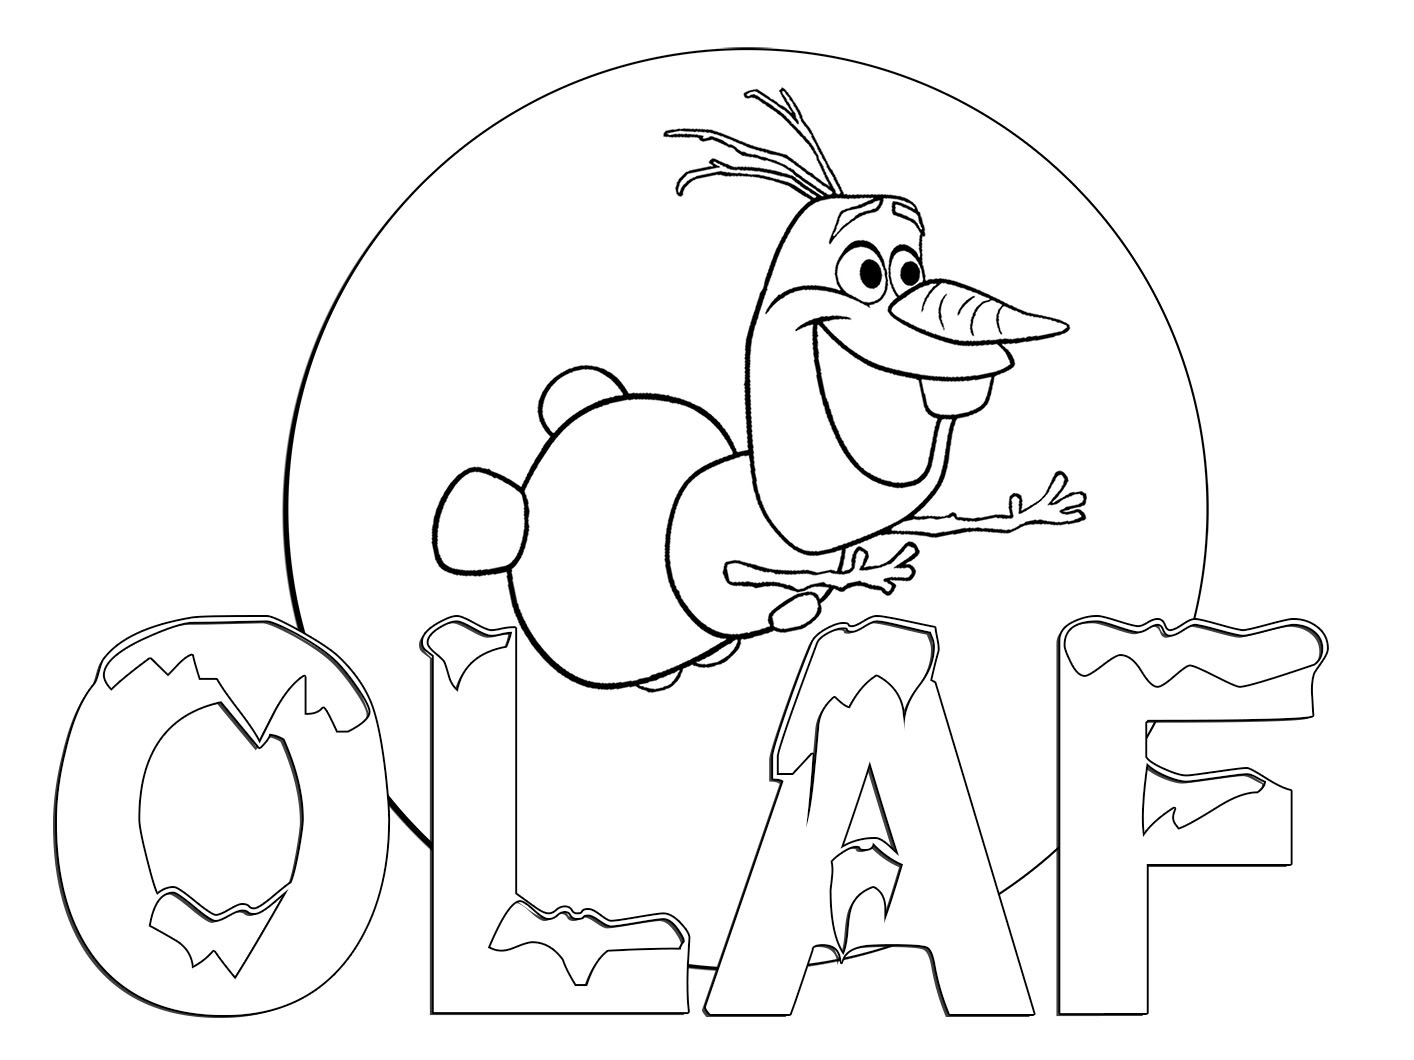 Olaf-frozen-movie-coloring-pages